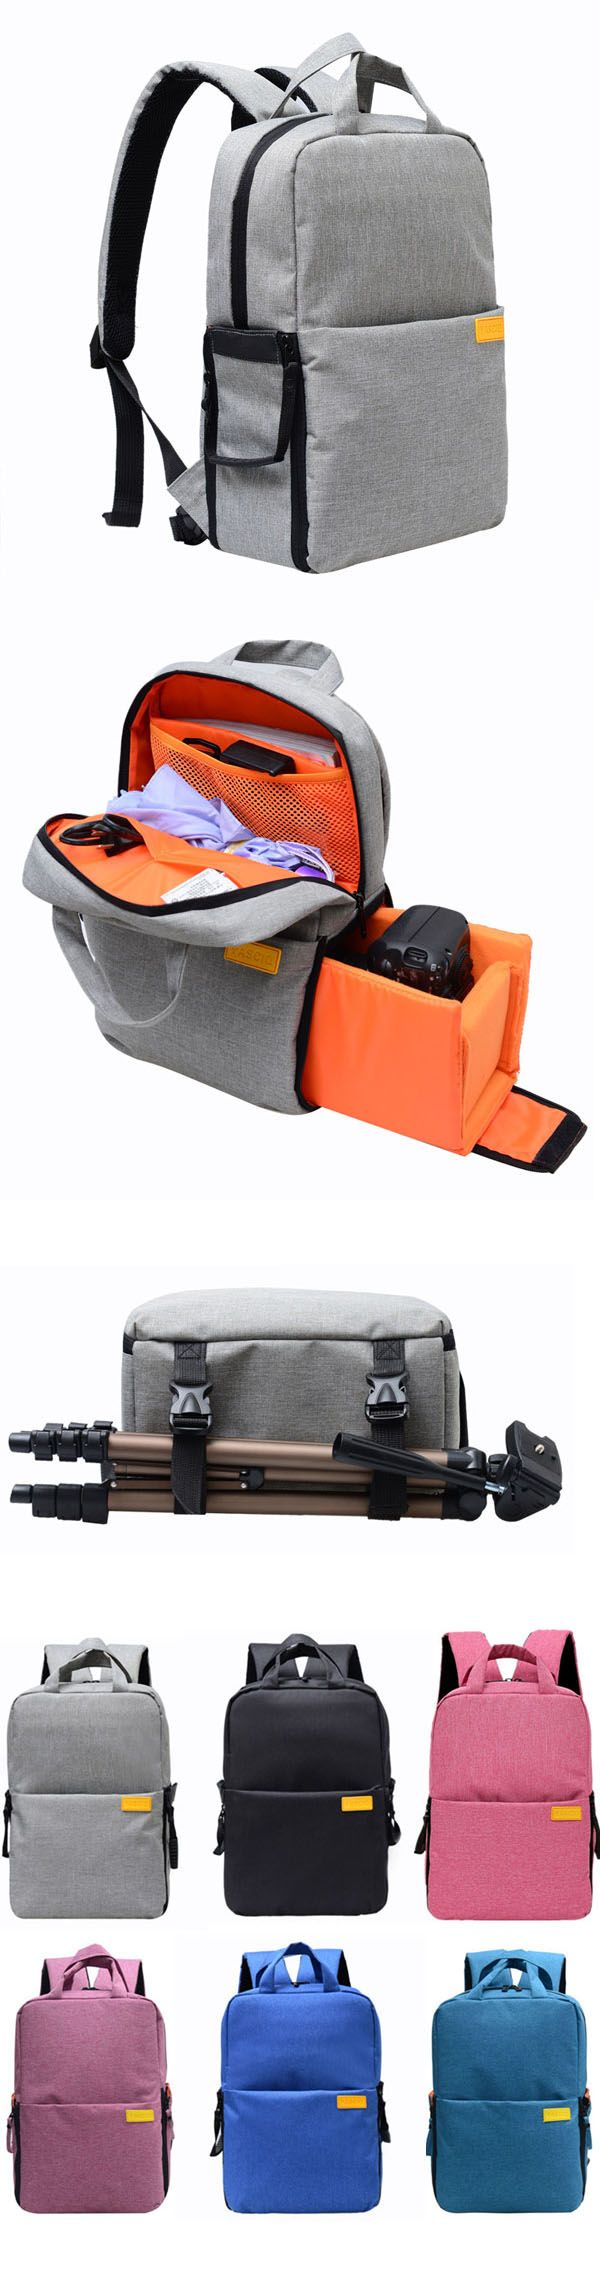 US$53.64+Free shipping. Camera Bags, Camera Backpacks, Waterproof Bag, Large Capacity, Nylon Material, 360 protect your camera. Color: Black, Rose, Dark Blue, Rose, Grey.